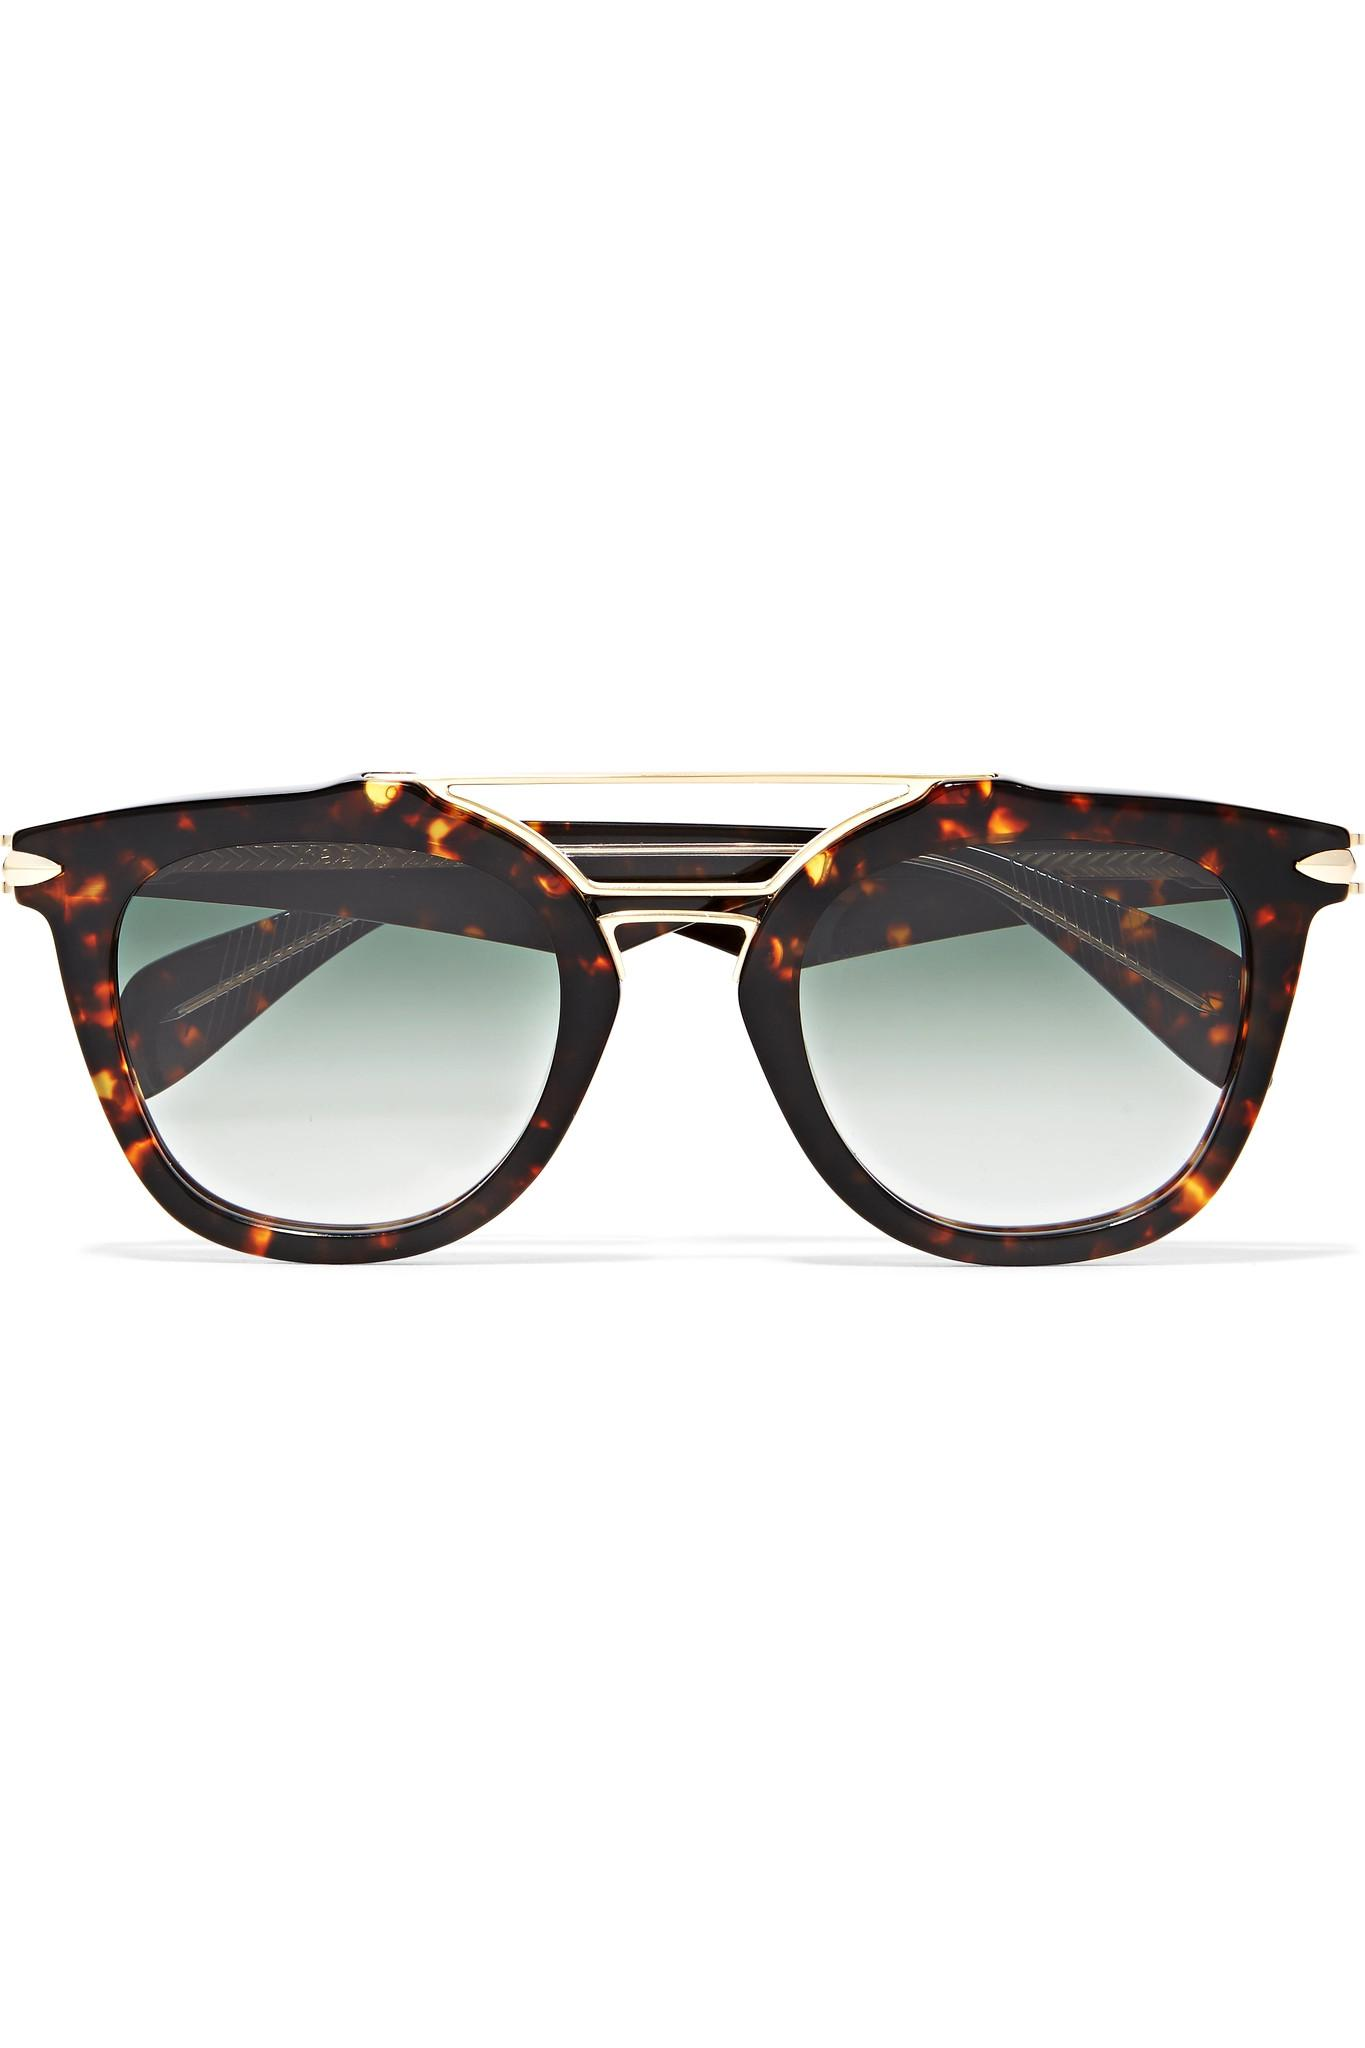 0e438d7106 Lyst - Rag   Bone Cat-eye Tortoiseshell Acetate And Gold-tone Sunglasses